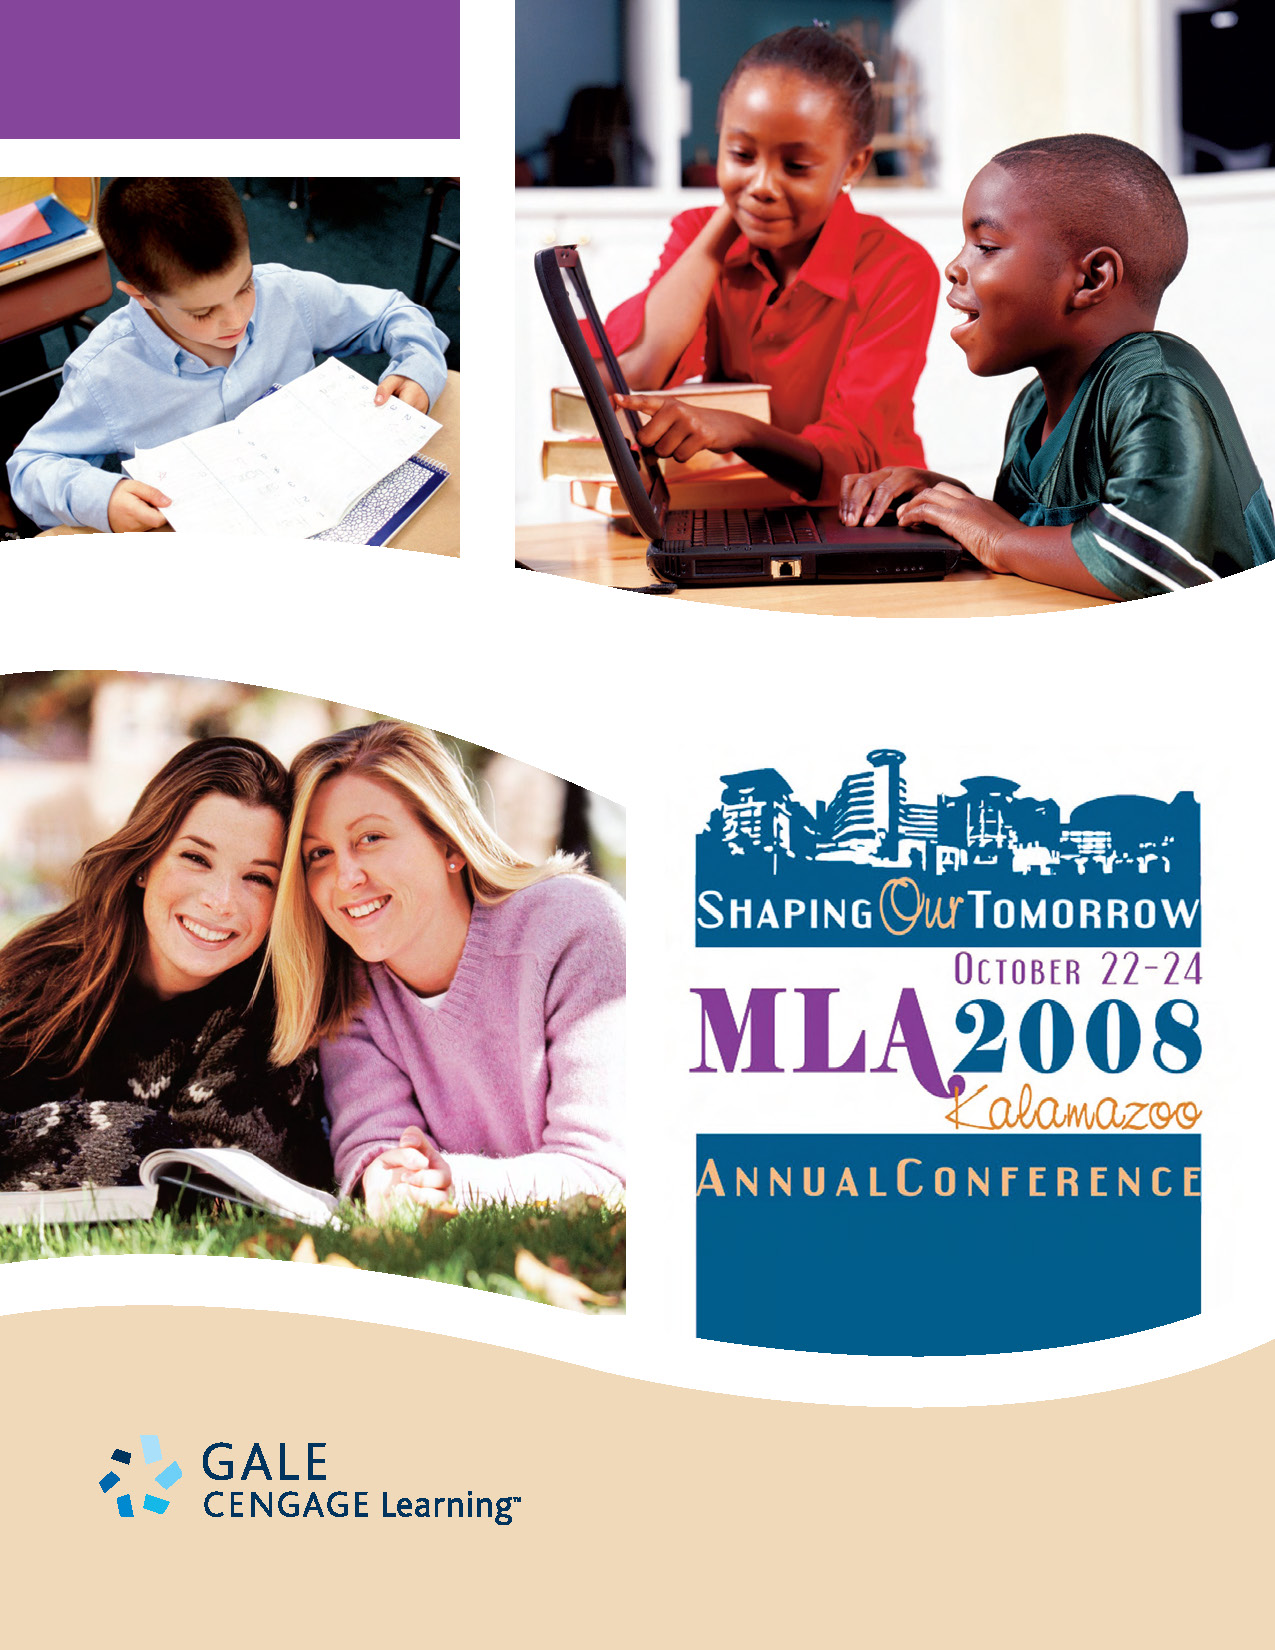 MLA 2008 Program Book Cover image - linked to program book pdf